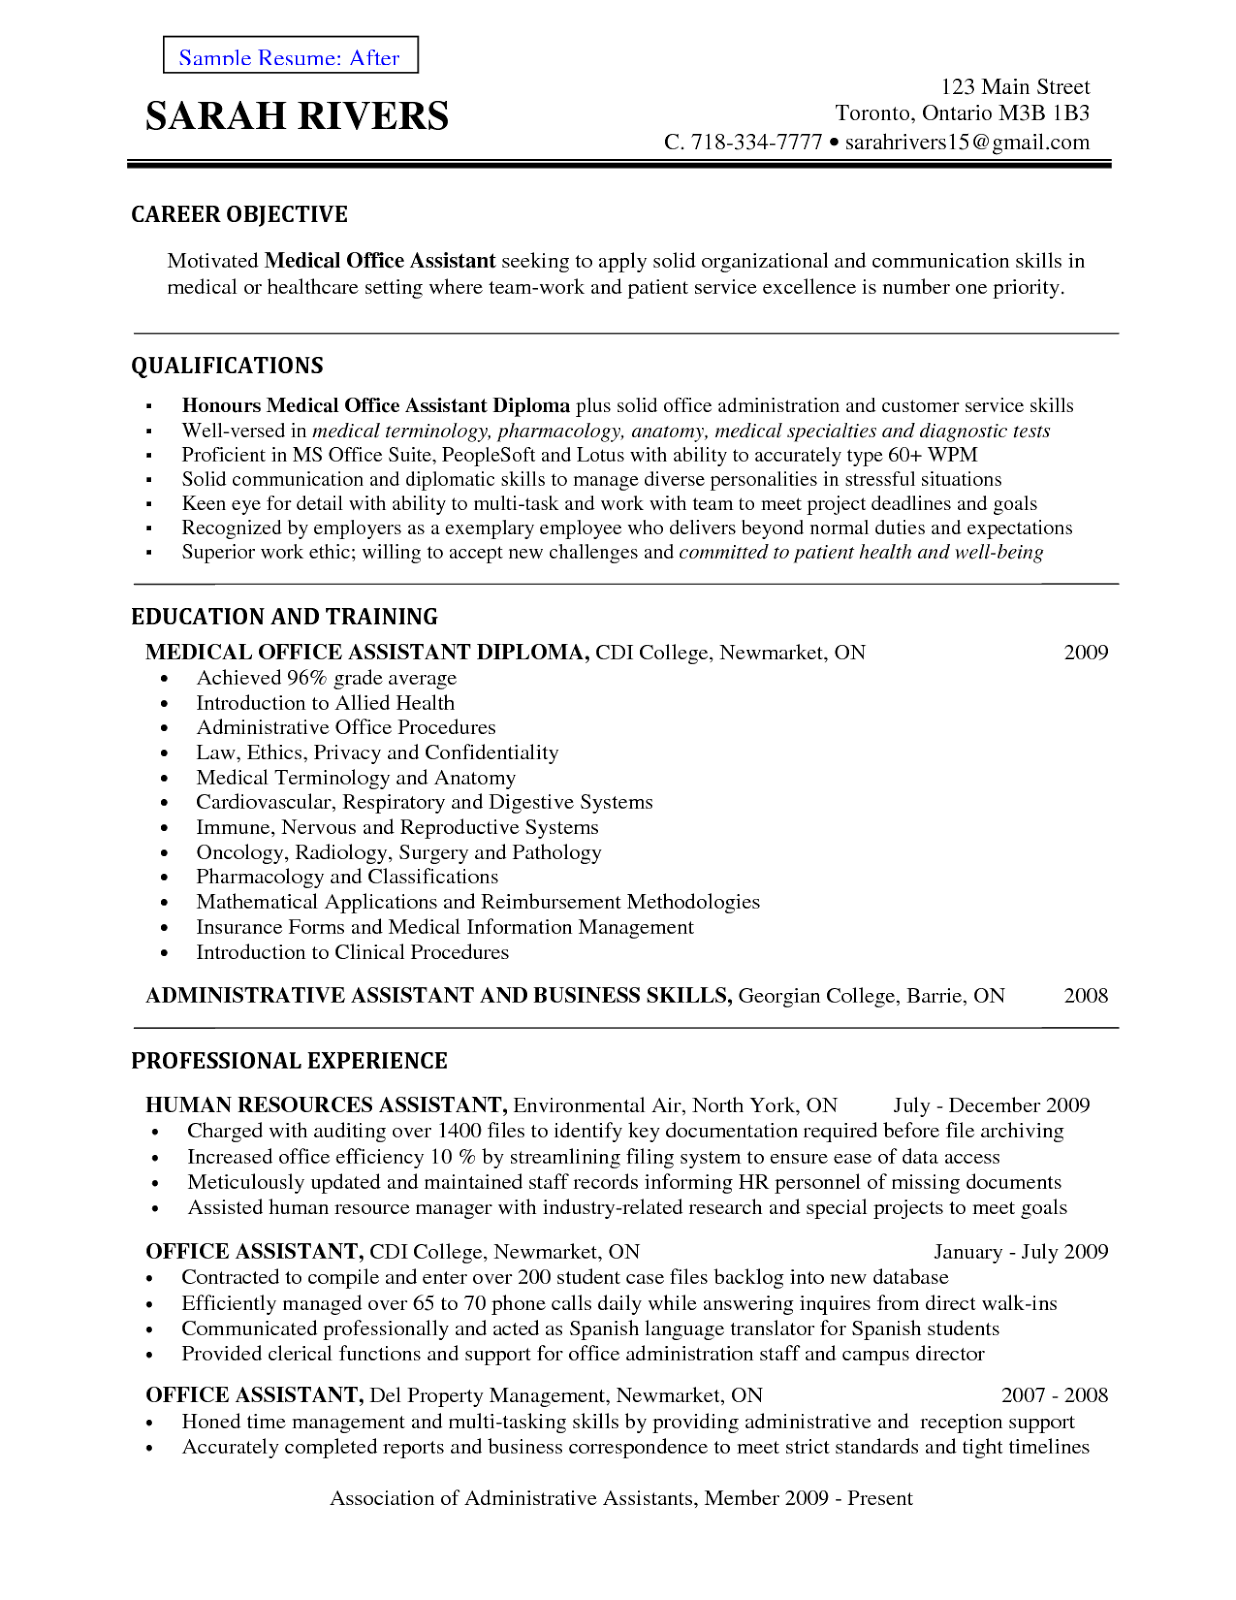 examples resumes resume sample for best farmer resume example examples resumes resume sample for camera assistant resume sample dental service technician resume visualcv wine broker